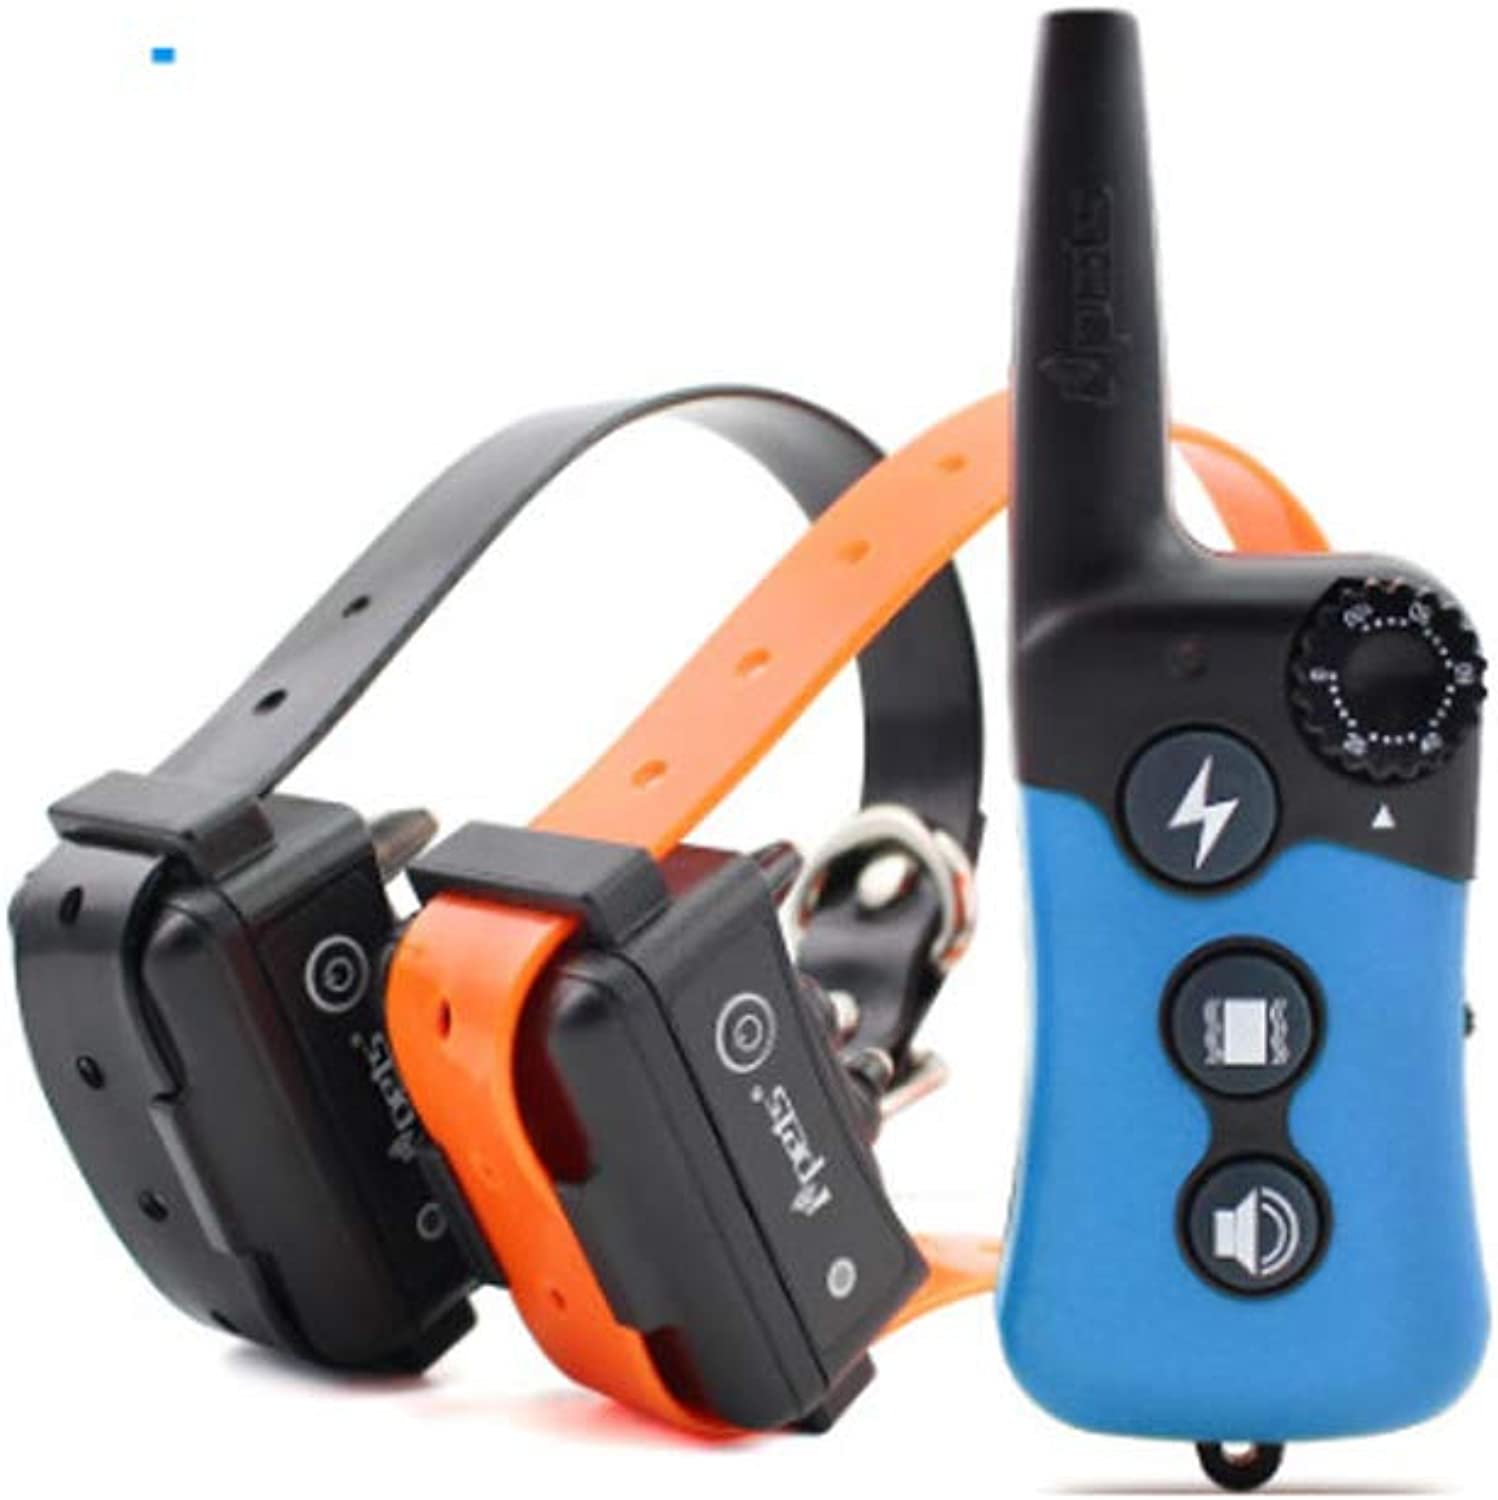 Dog Training Collar Pet 300m Device Rechargeable Waterproof Shock for Large Vibration with Remote